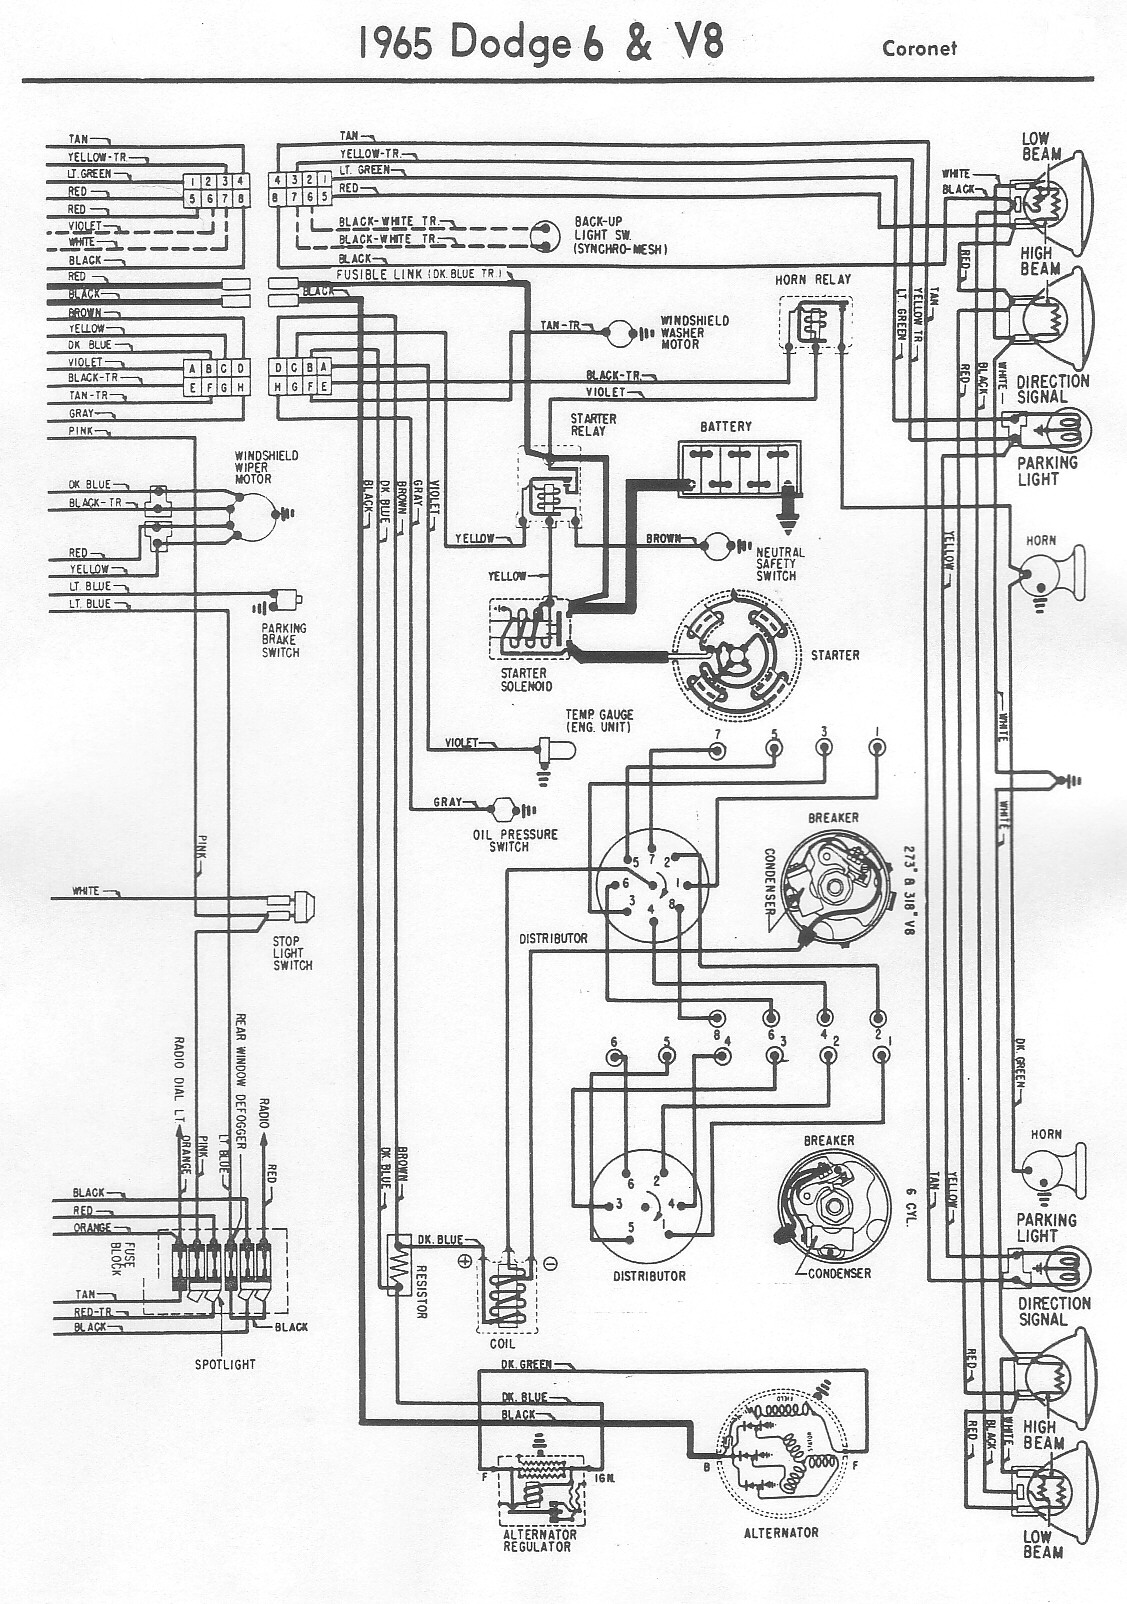 wiring diagram on 1969 coronet [ 1127 x 1604 Pixel ]